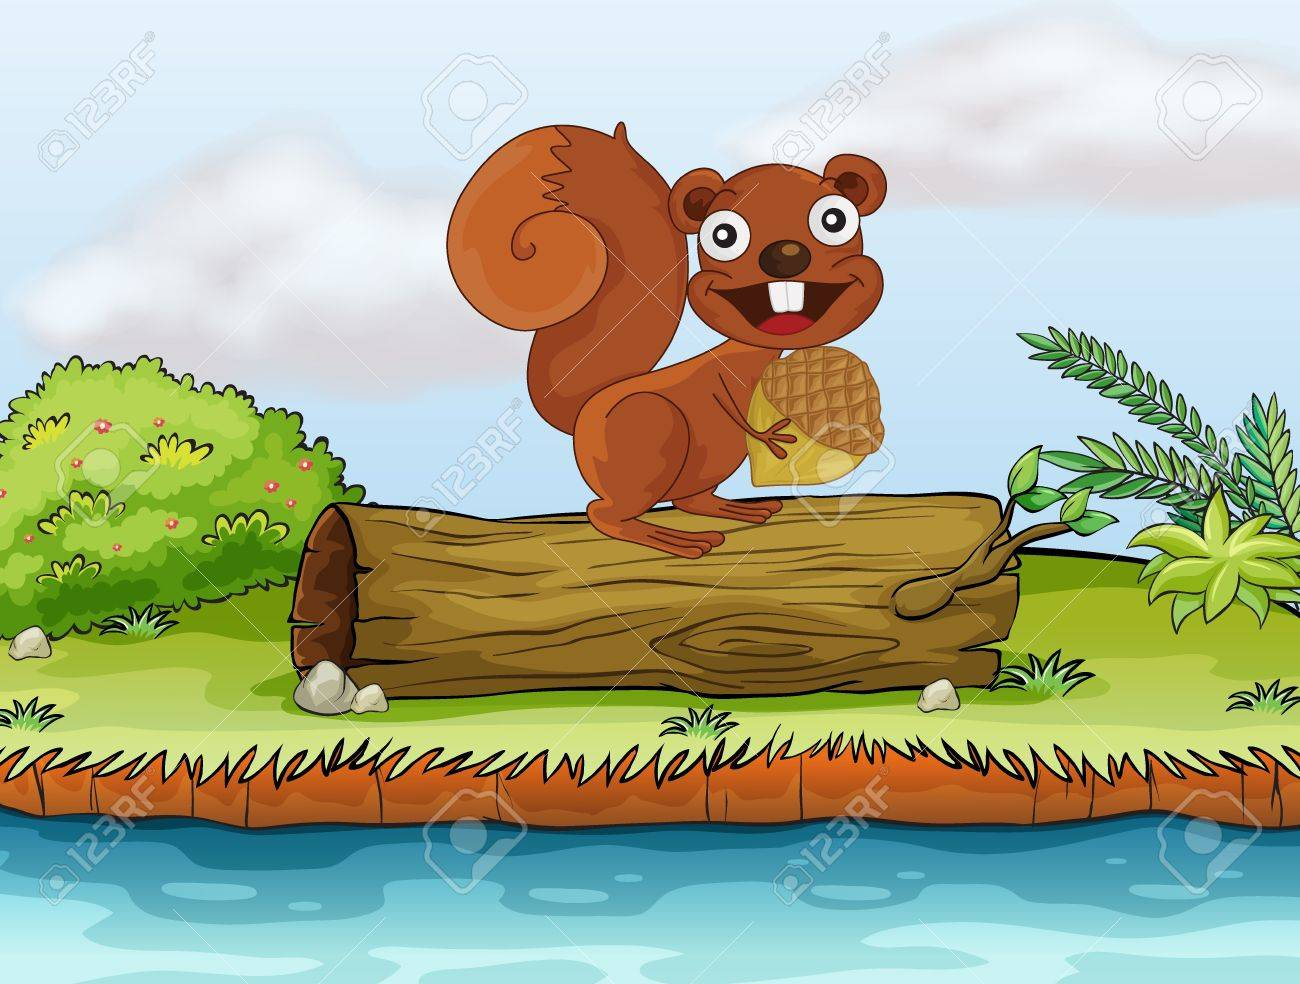 Illustration of a squirrel that loves to eat nuts on the top of a trunk Stock Vector - 17339049